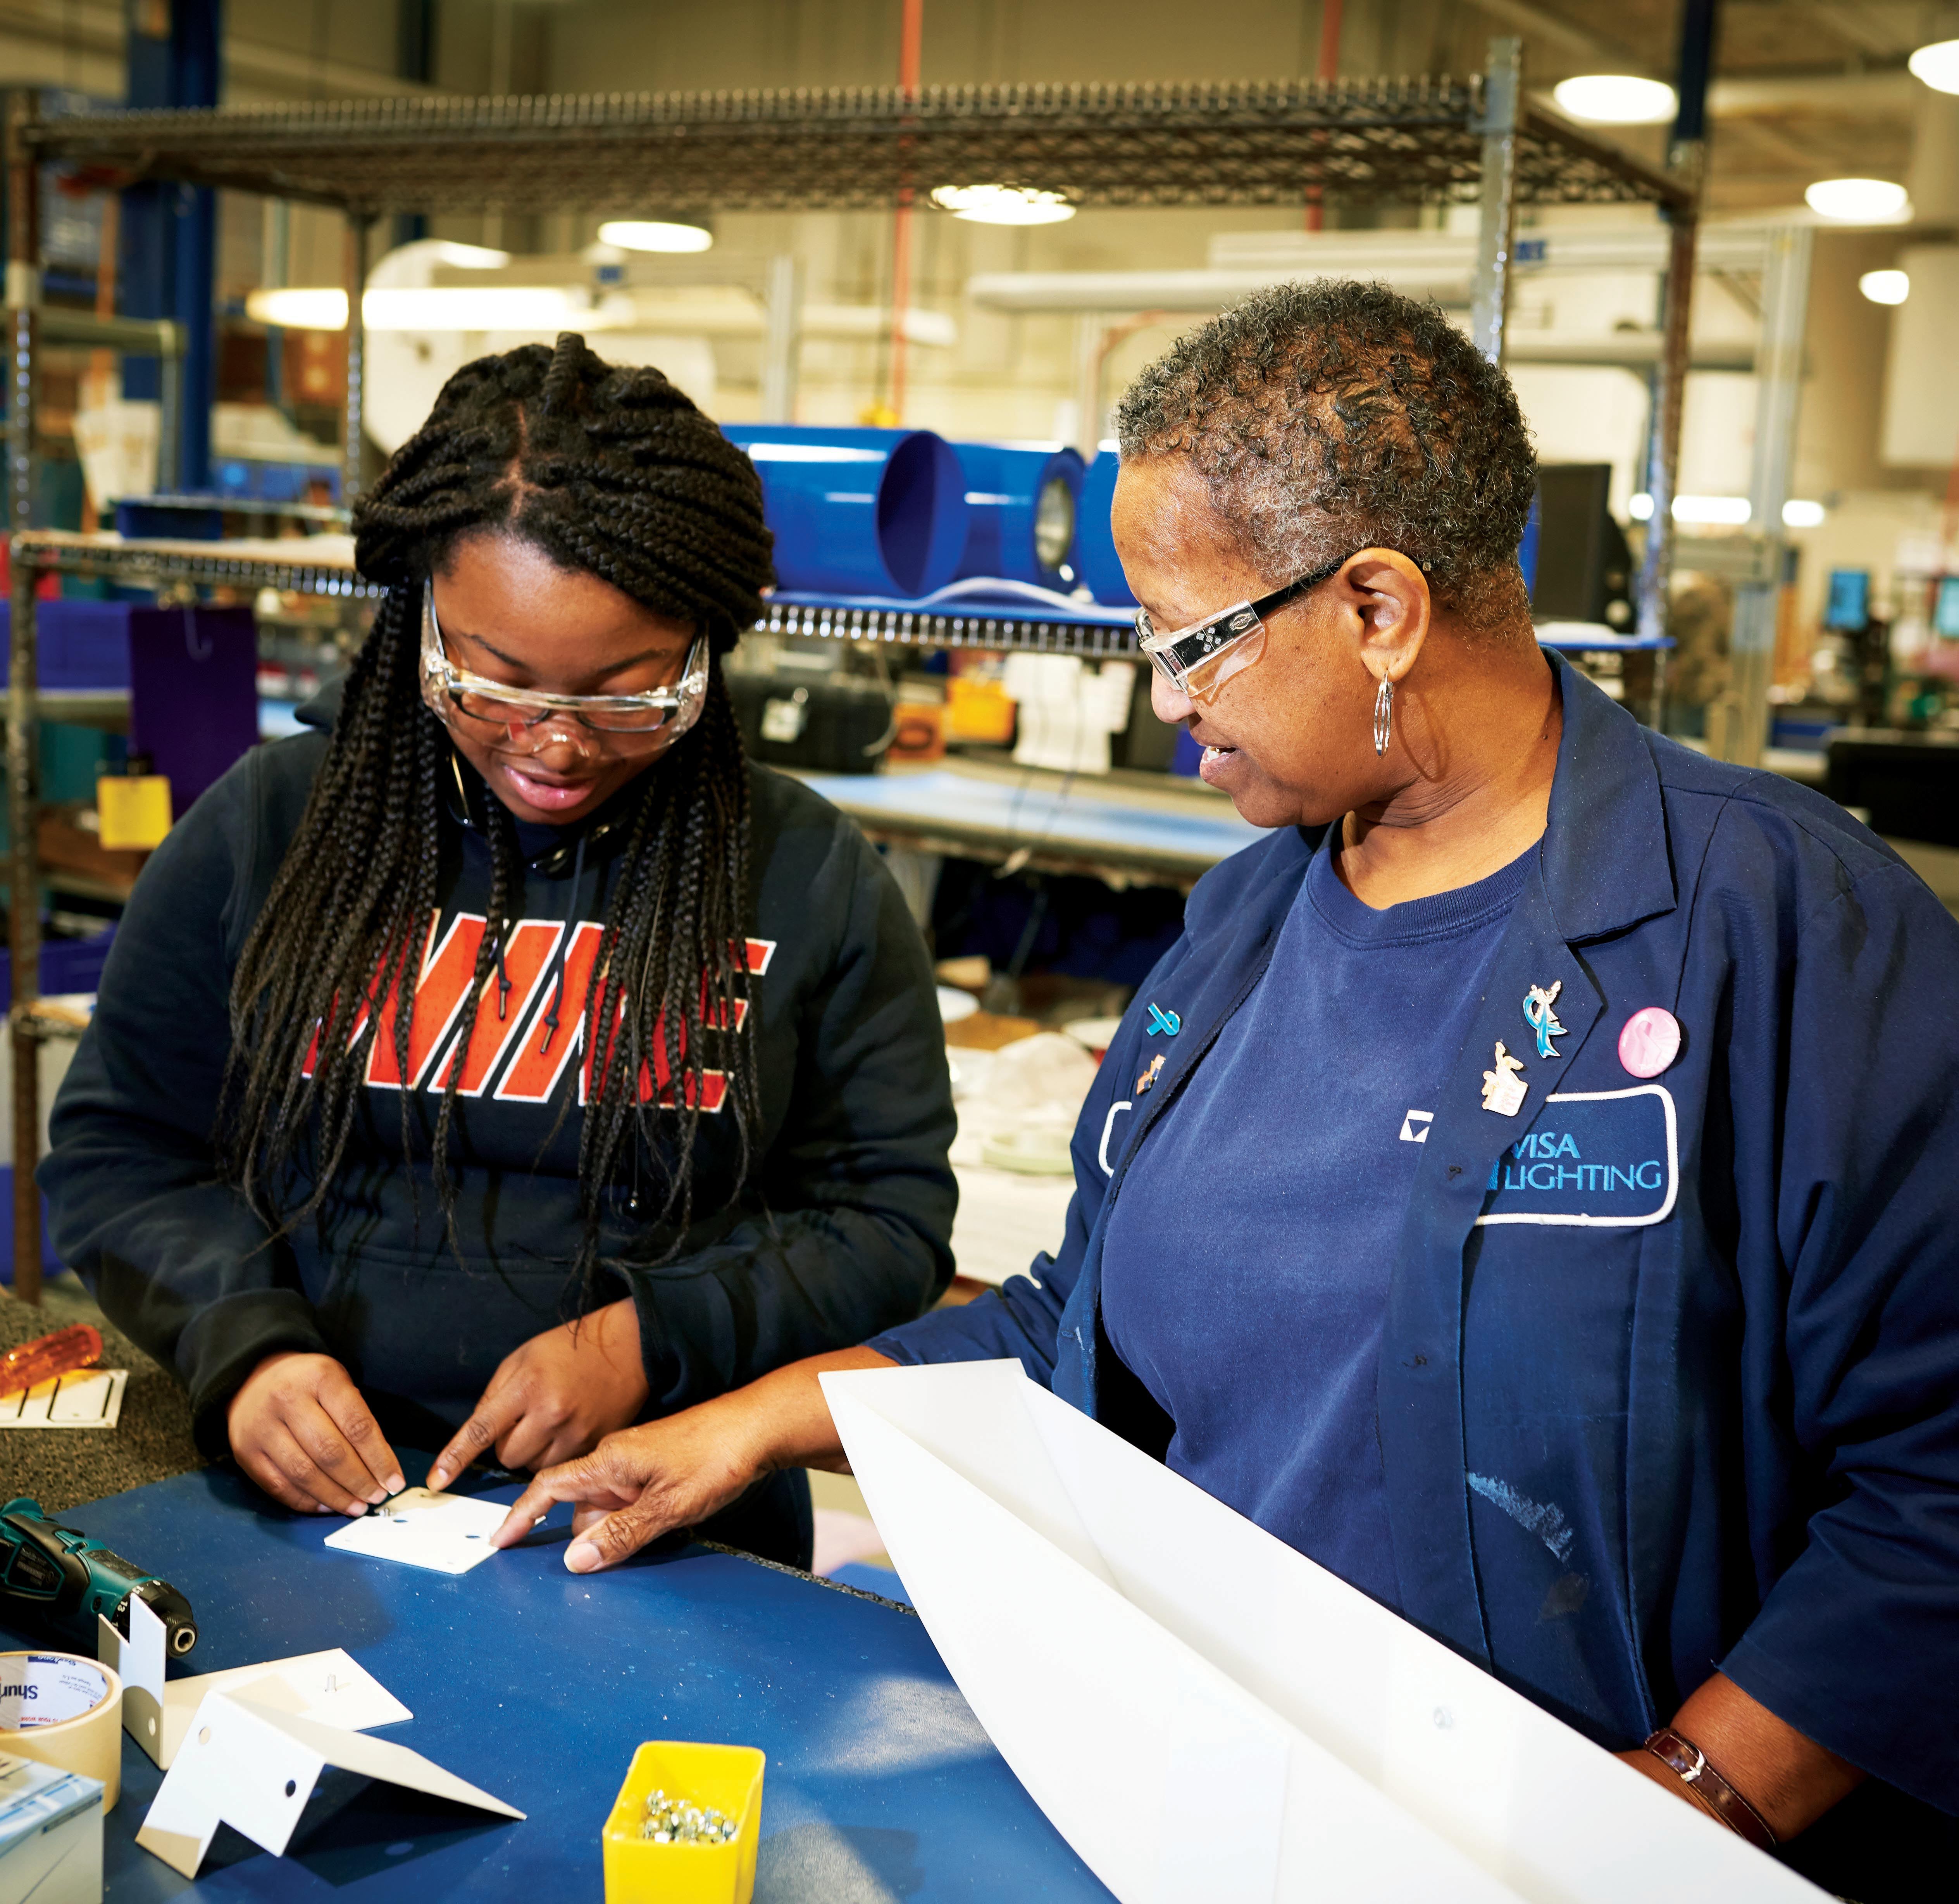 Visa lighting represents made in America manufacturing, Alice and her granddaughter work together in assembly.